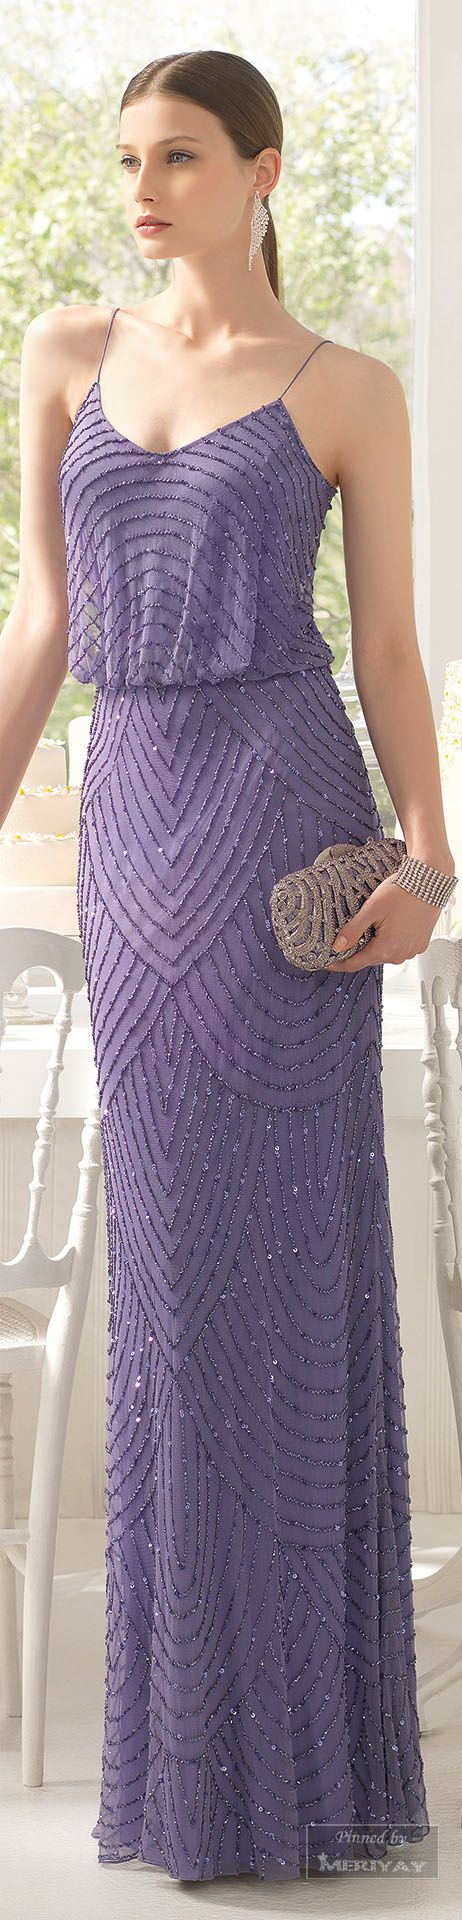 325 best Gorgeous Gowns images on Pinterest | Ball dresses, Ball ...